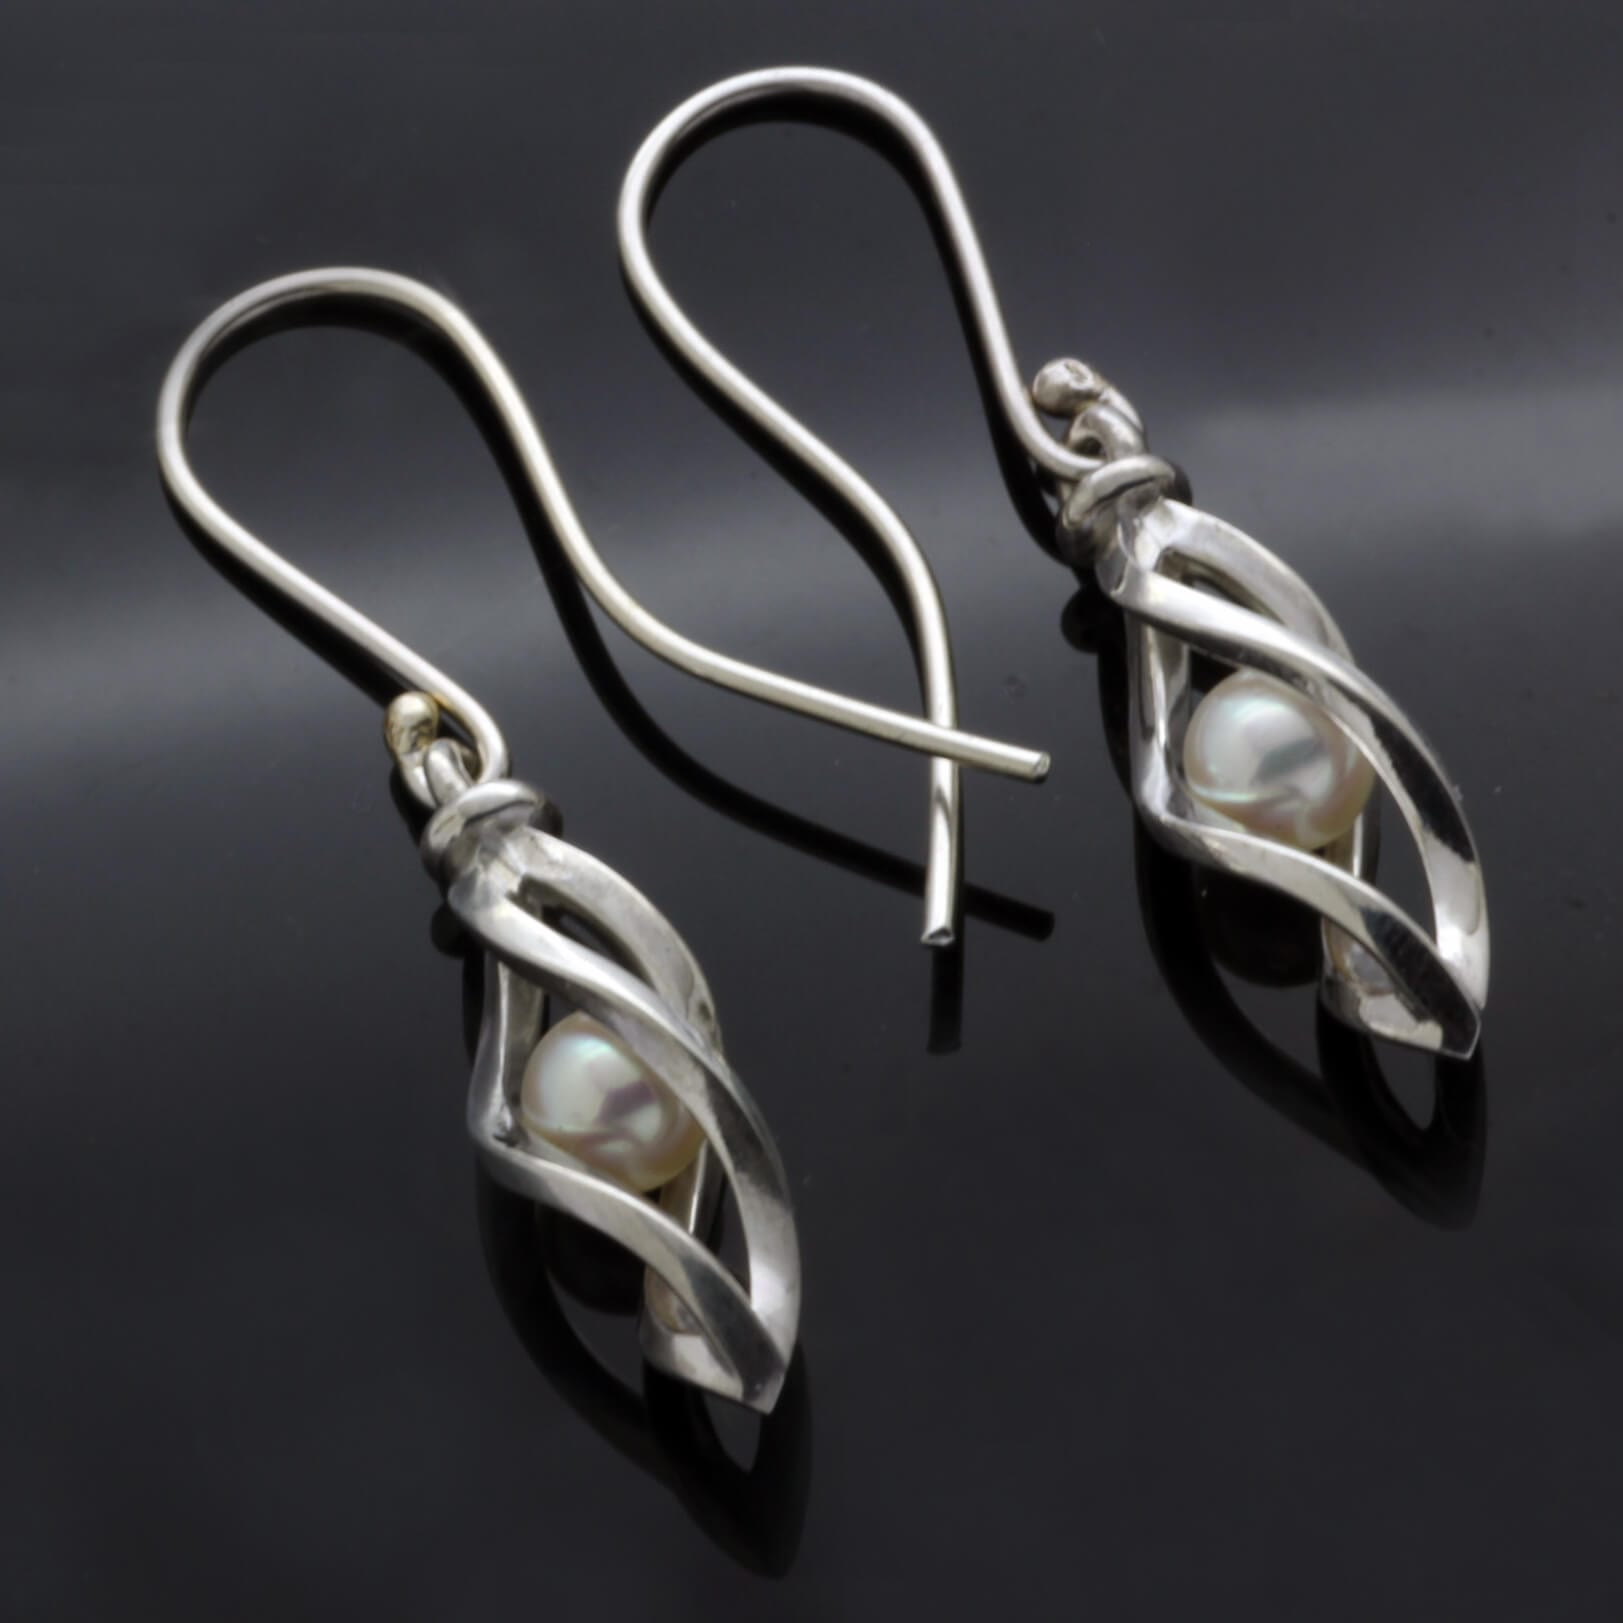 Unique quirky Pearl Silver earrings handmade by Julian Stephens